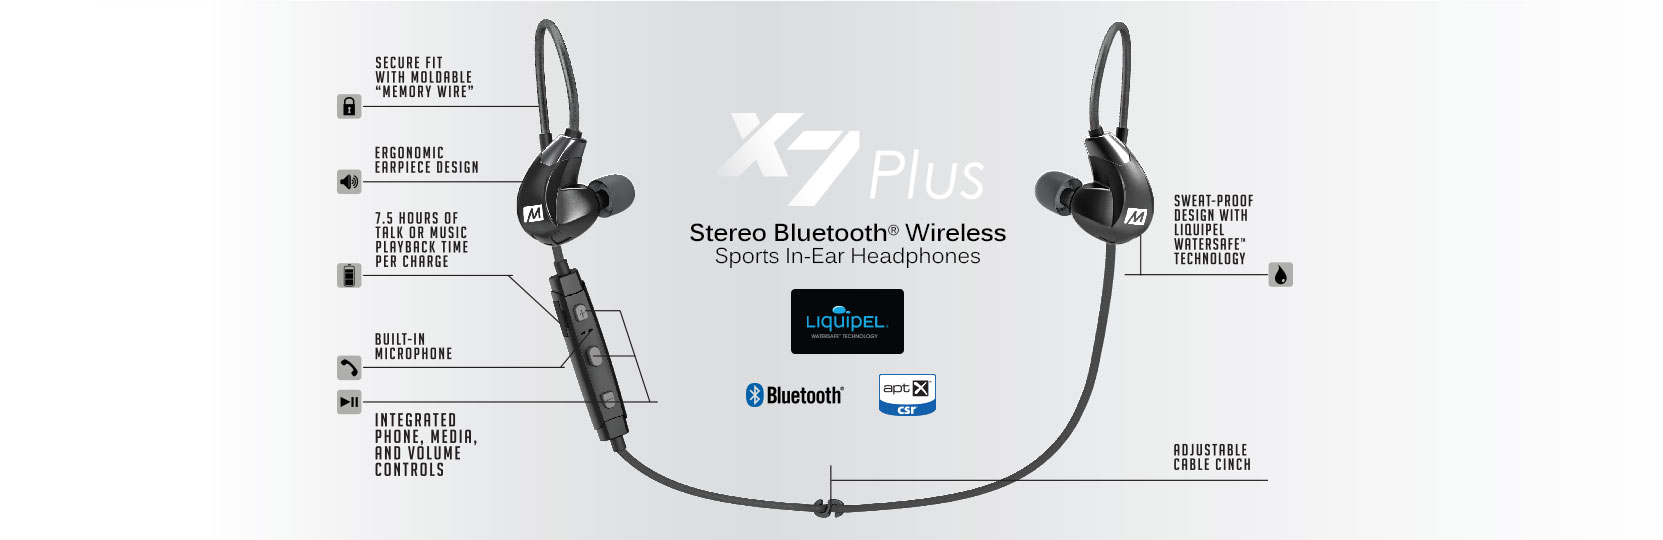 d0cff0de2cc Engineered for active lifestyles, the X7 Plus combines high-definition wireless  sound with secure, locked-in fit, sweat-resistant design, and built-in ...